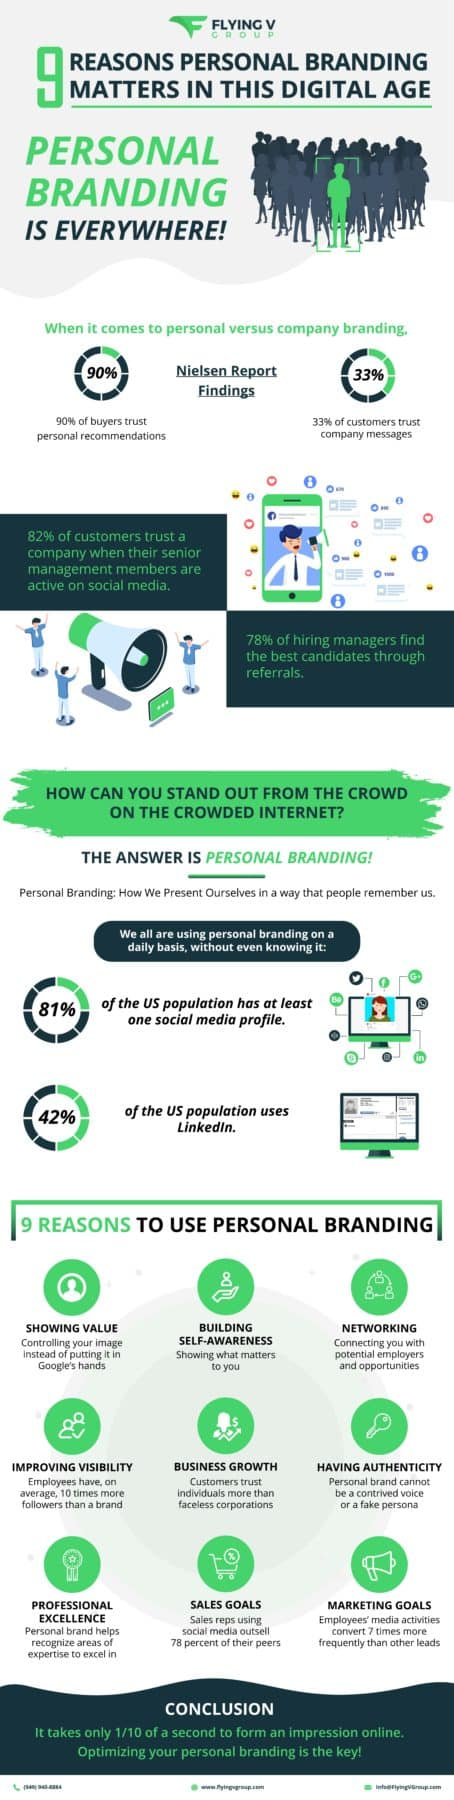 9 Reasons Personal branding Matters in this Digital Age Infographic